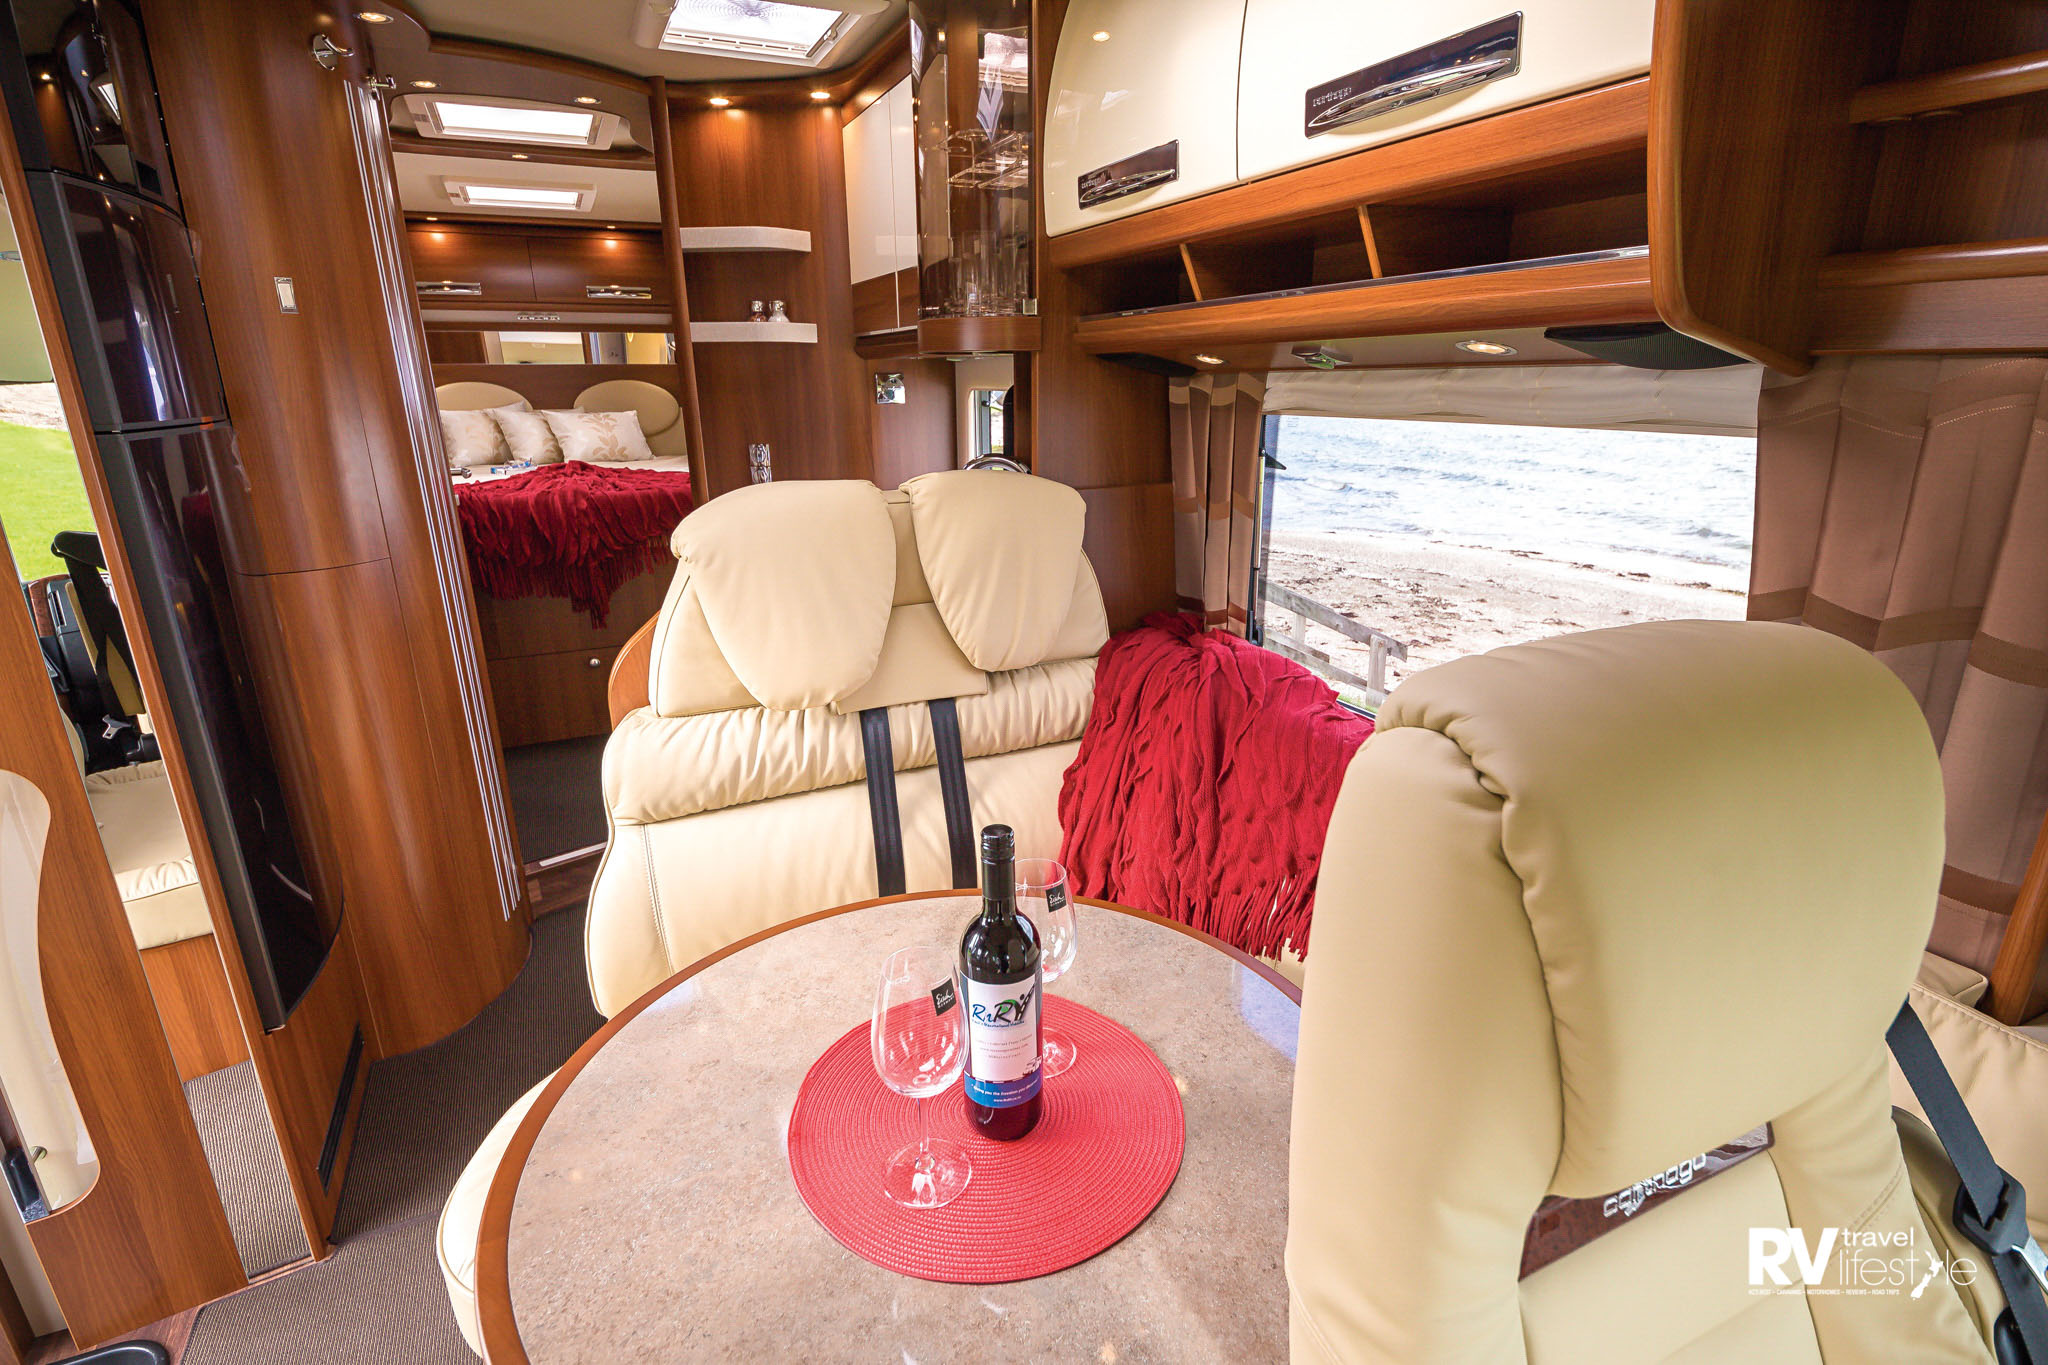 From the front cab the curves, and wood tones with areas of high gloss or mirror are warm and exude the feeling of luxury